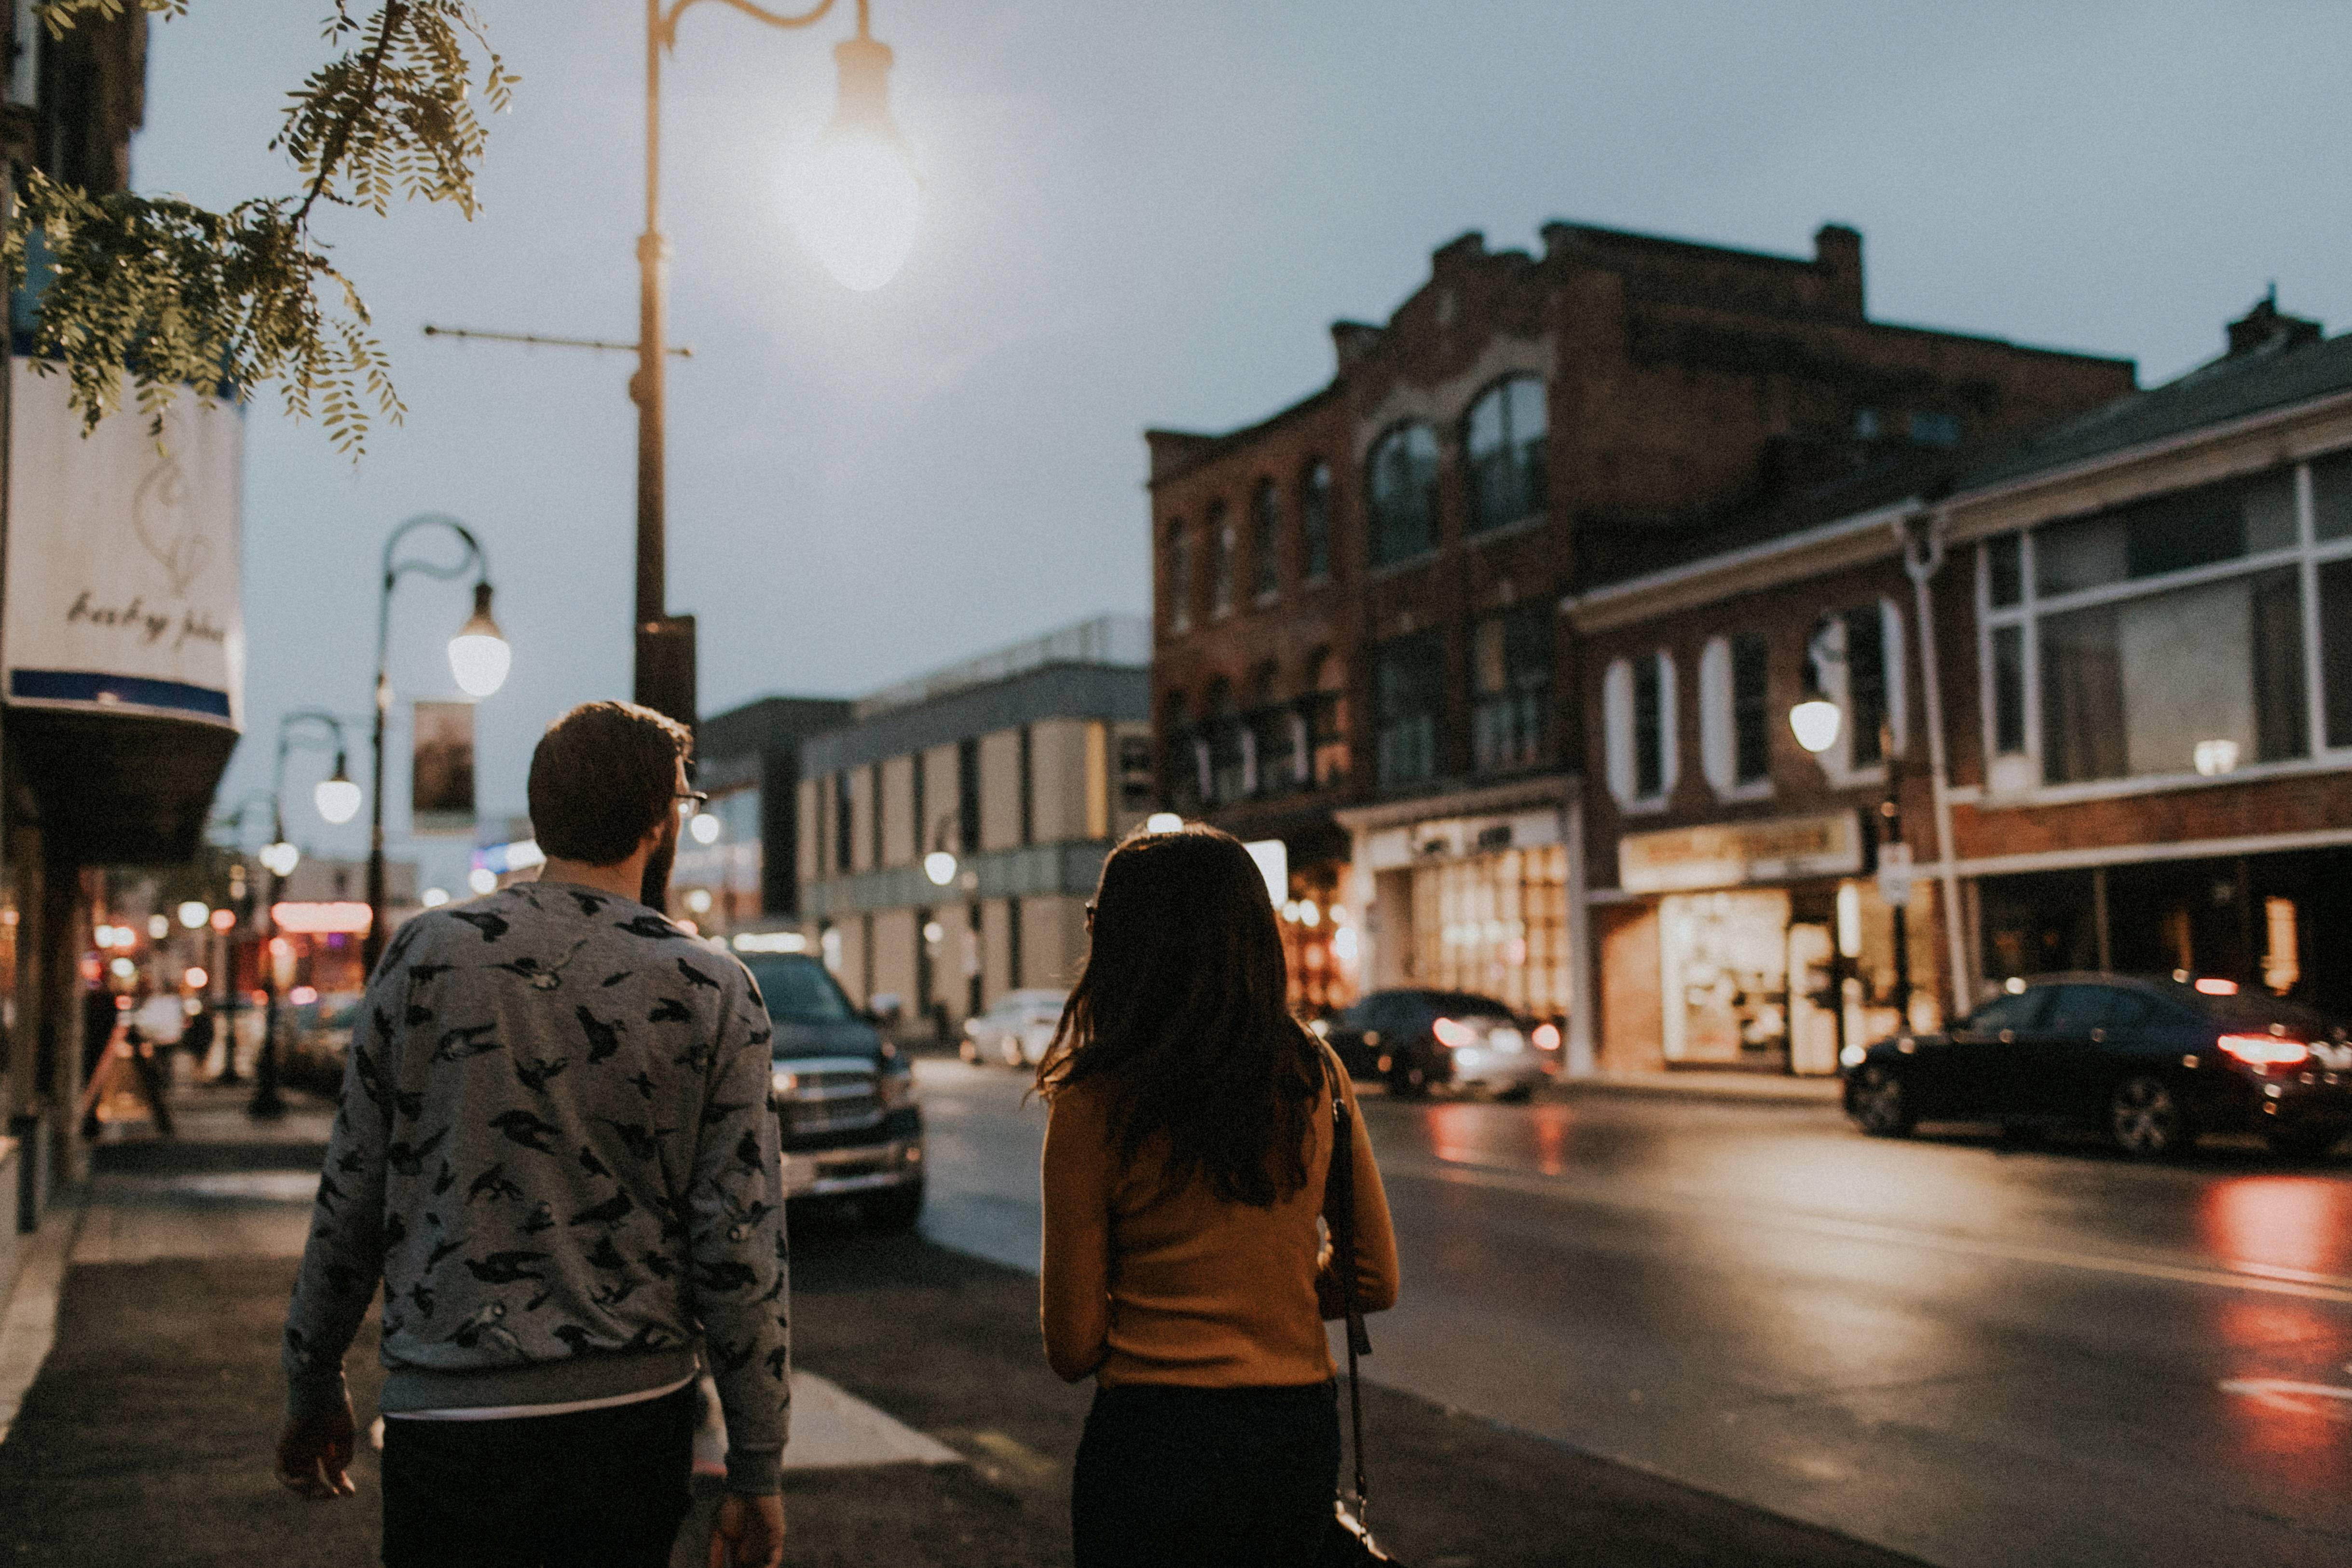 walking in downtown st. catharines